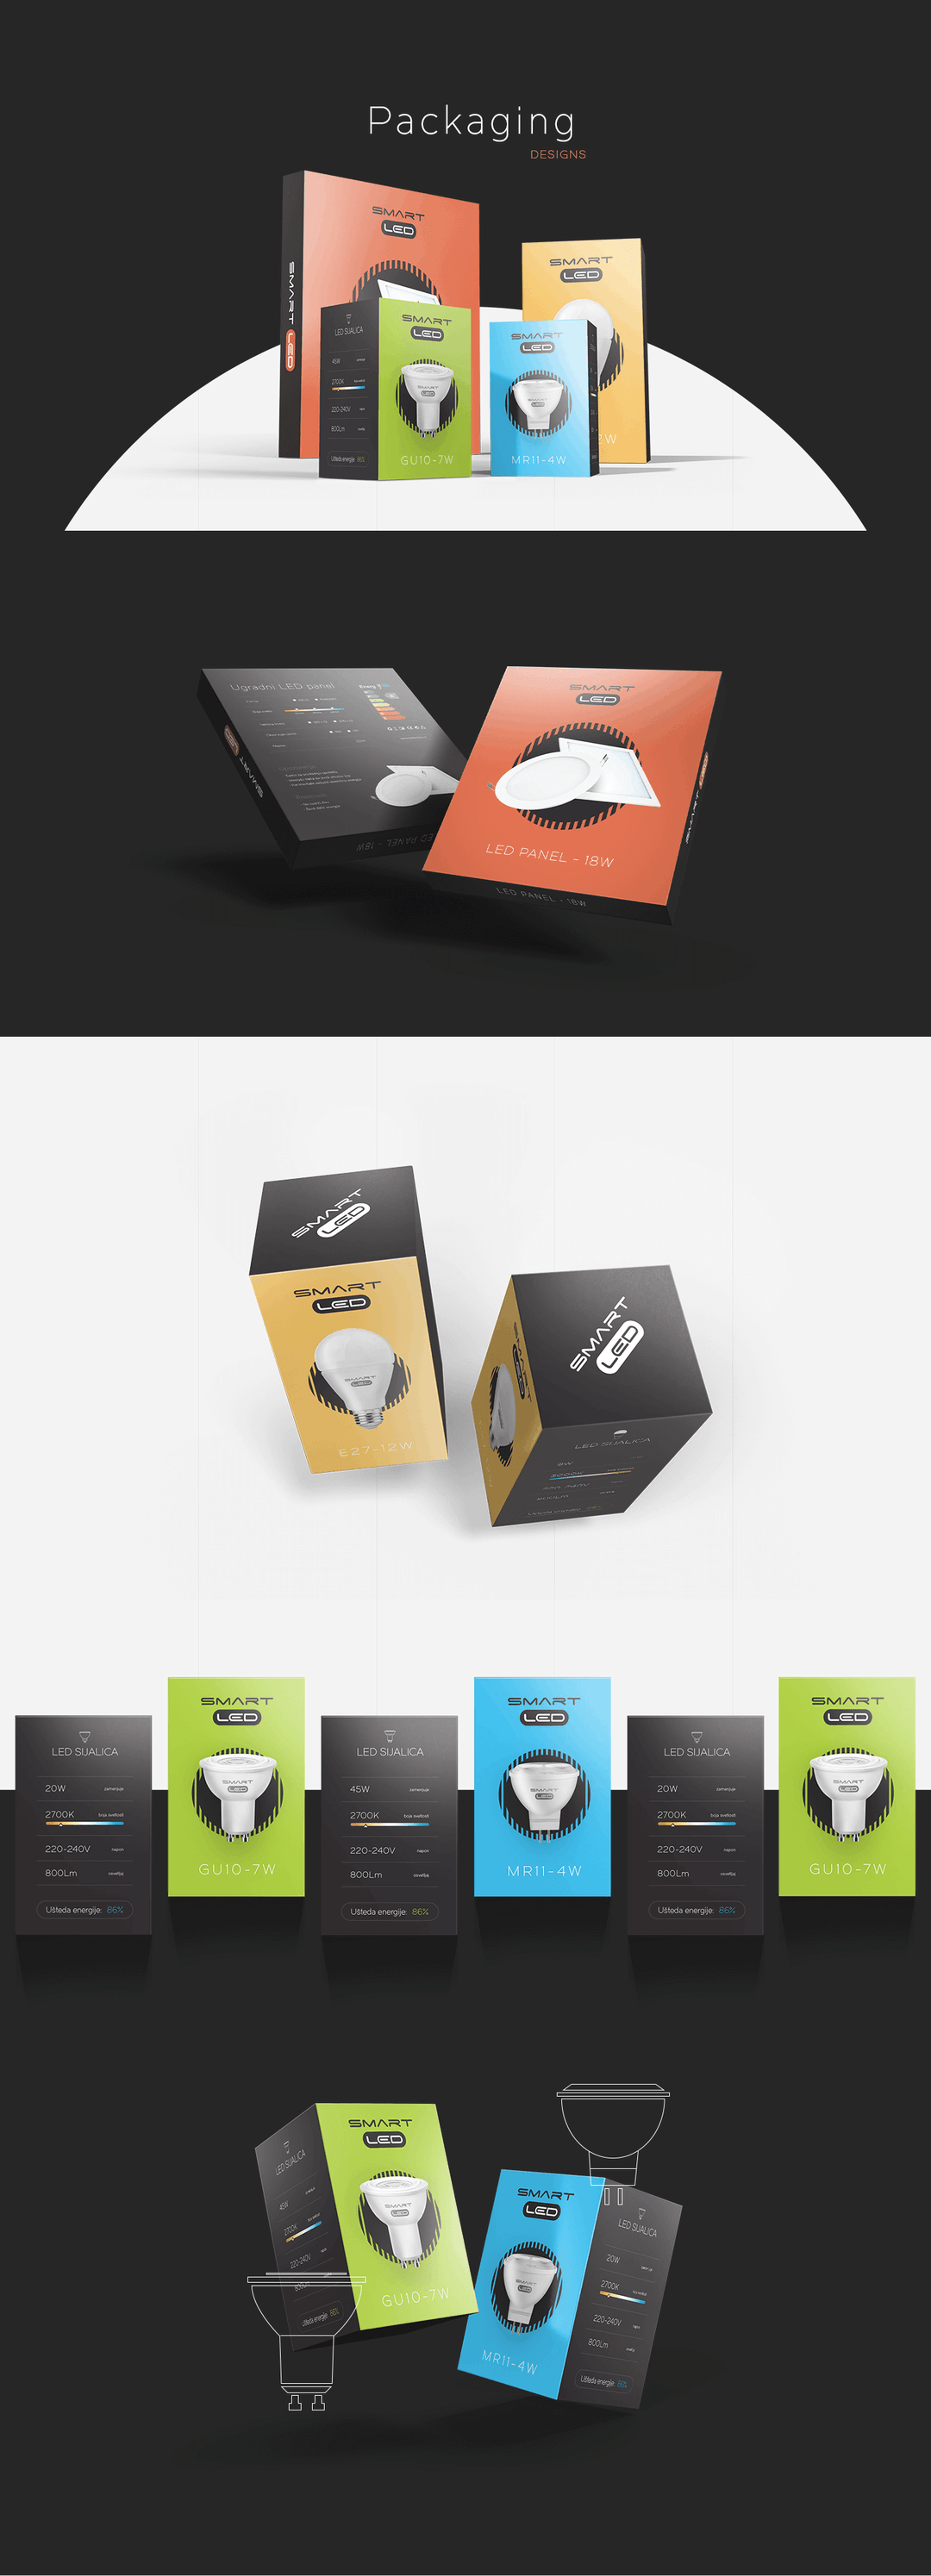 Smart LED light bulbs package design by Finsweet